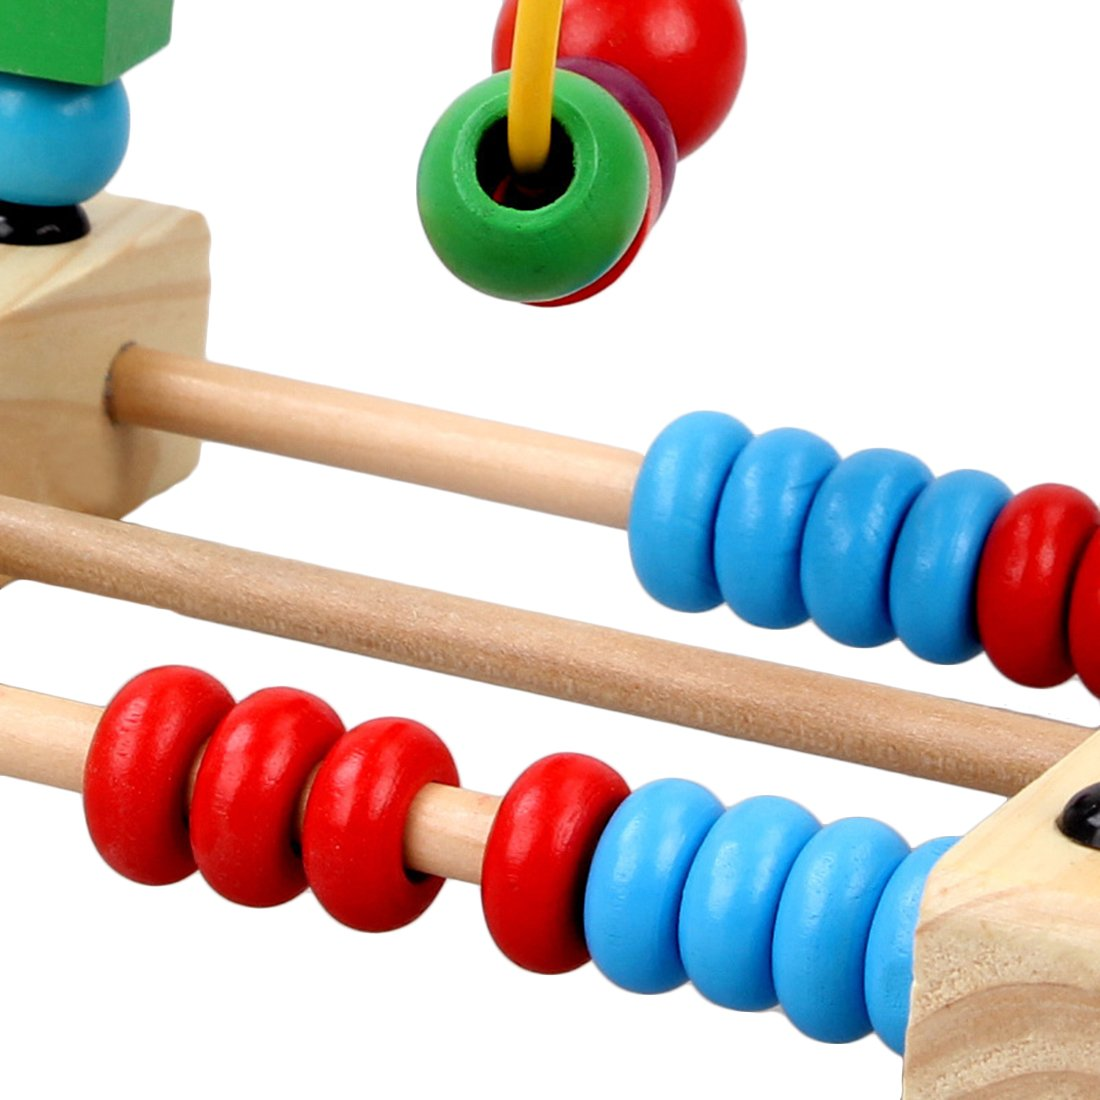 Vicoki Wooden Bead Maze Counting Toy for Babies Toddlers Roller Coaster Colorful Abacus Circle Toy